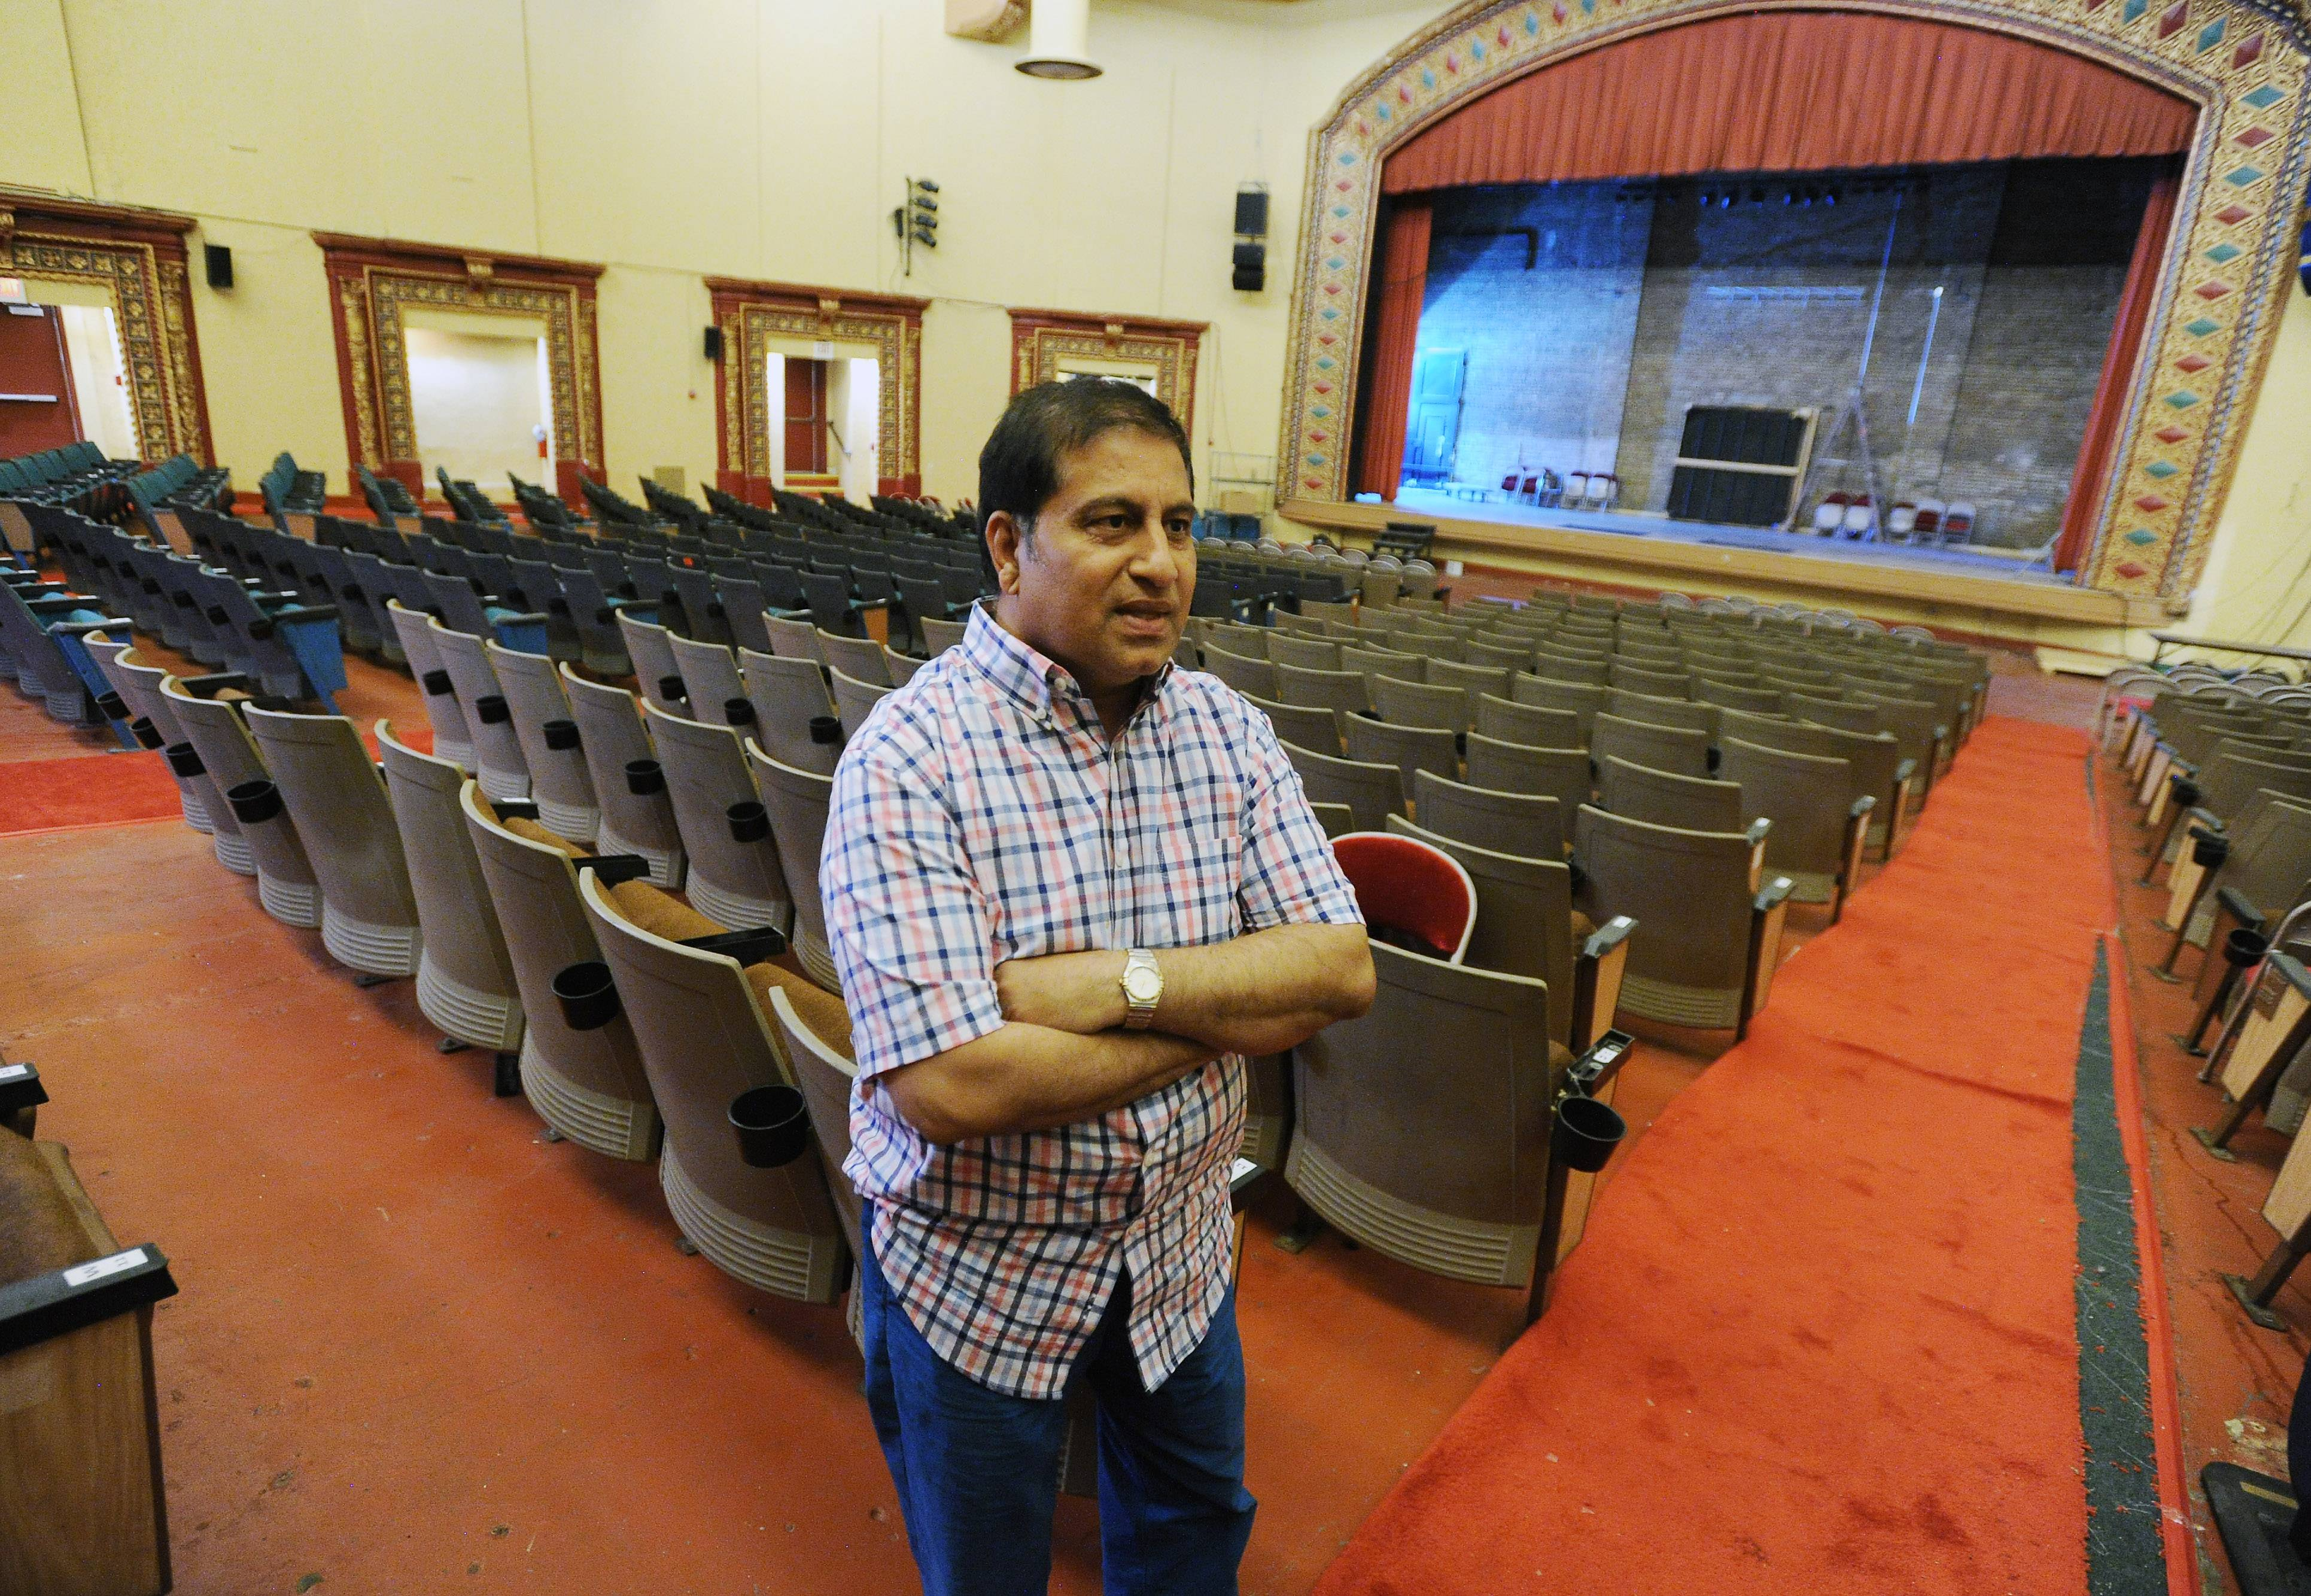 Des Plaines mulls spending millions on downtown theater